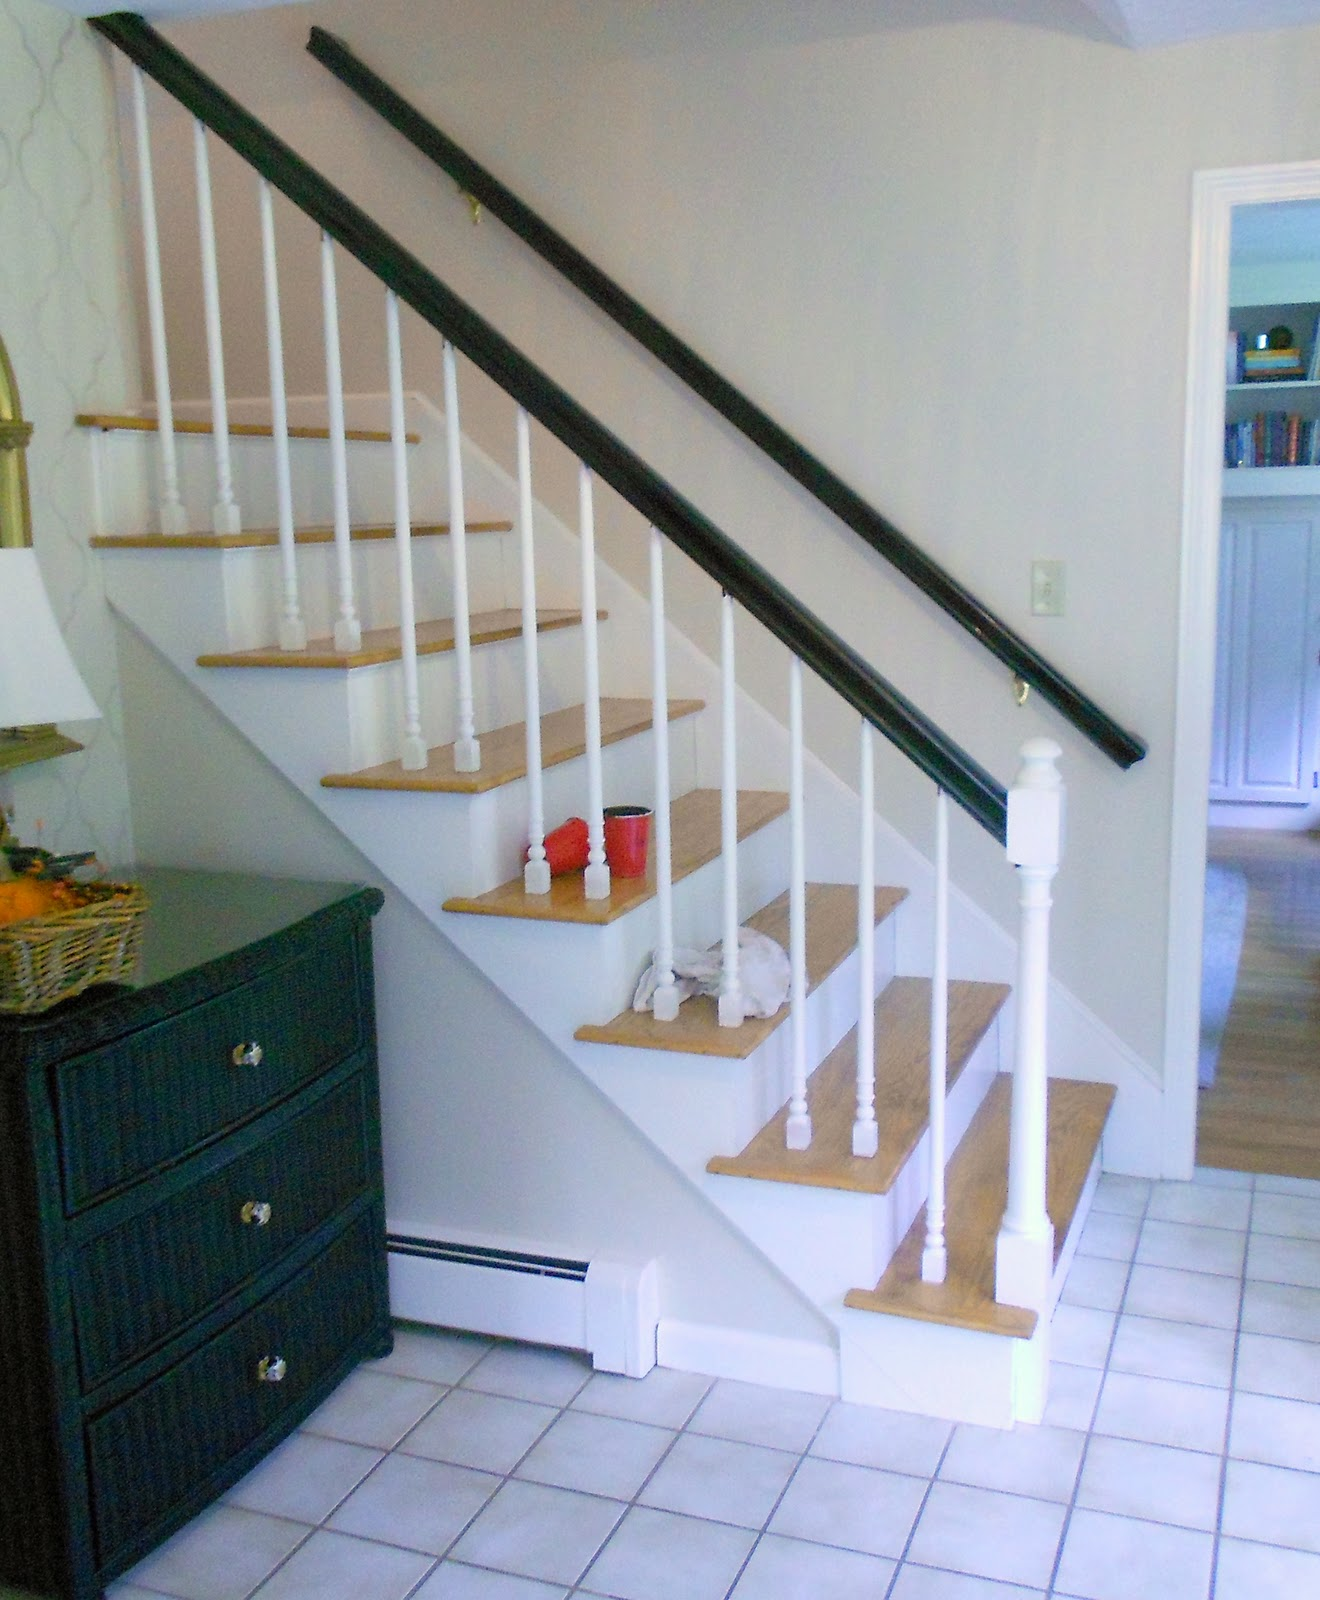 But Things Donu0027t Always Go According To Plan, Now Do They? We Loved The  Contrast Of The Dark Rail With The Light Treads,